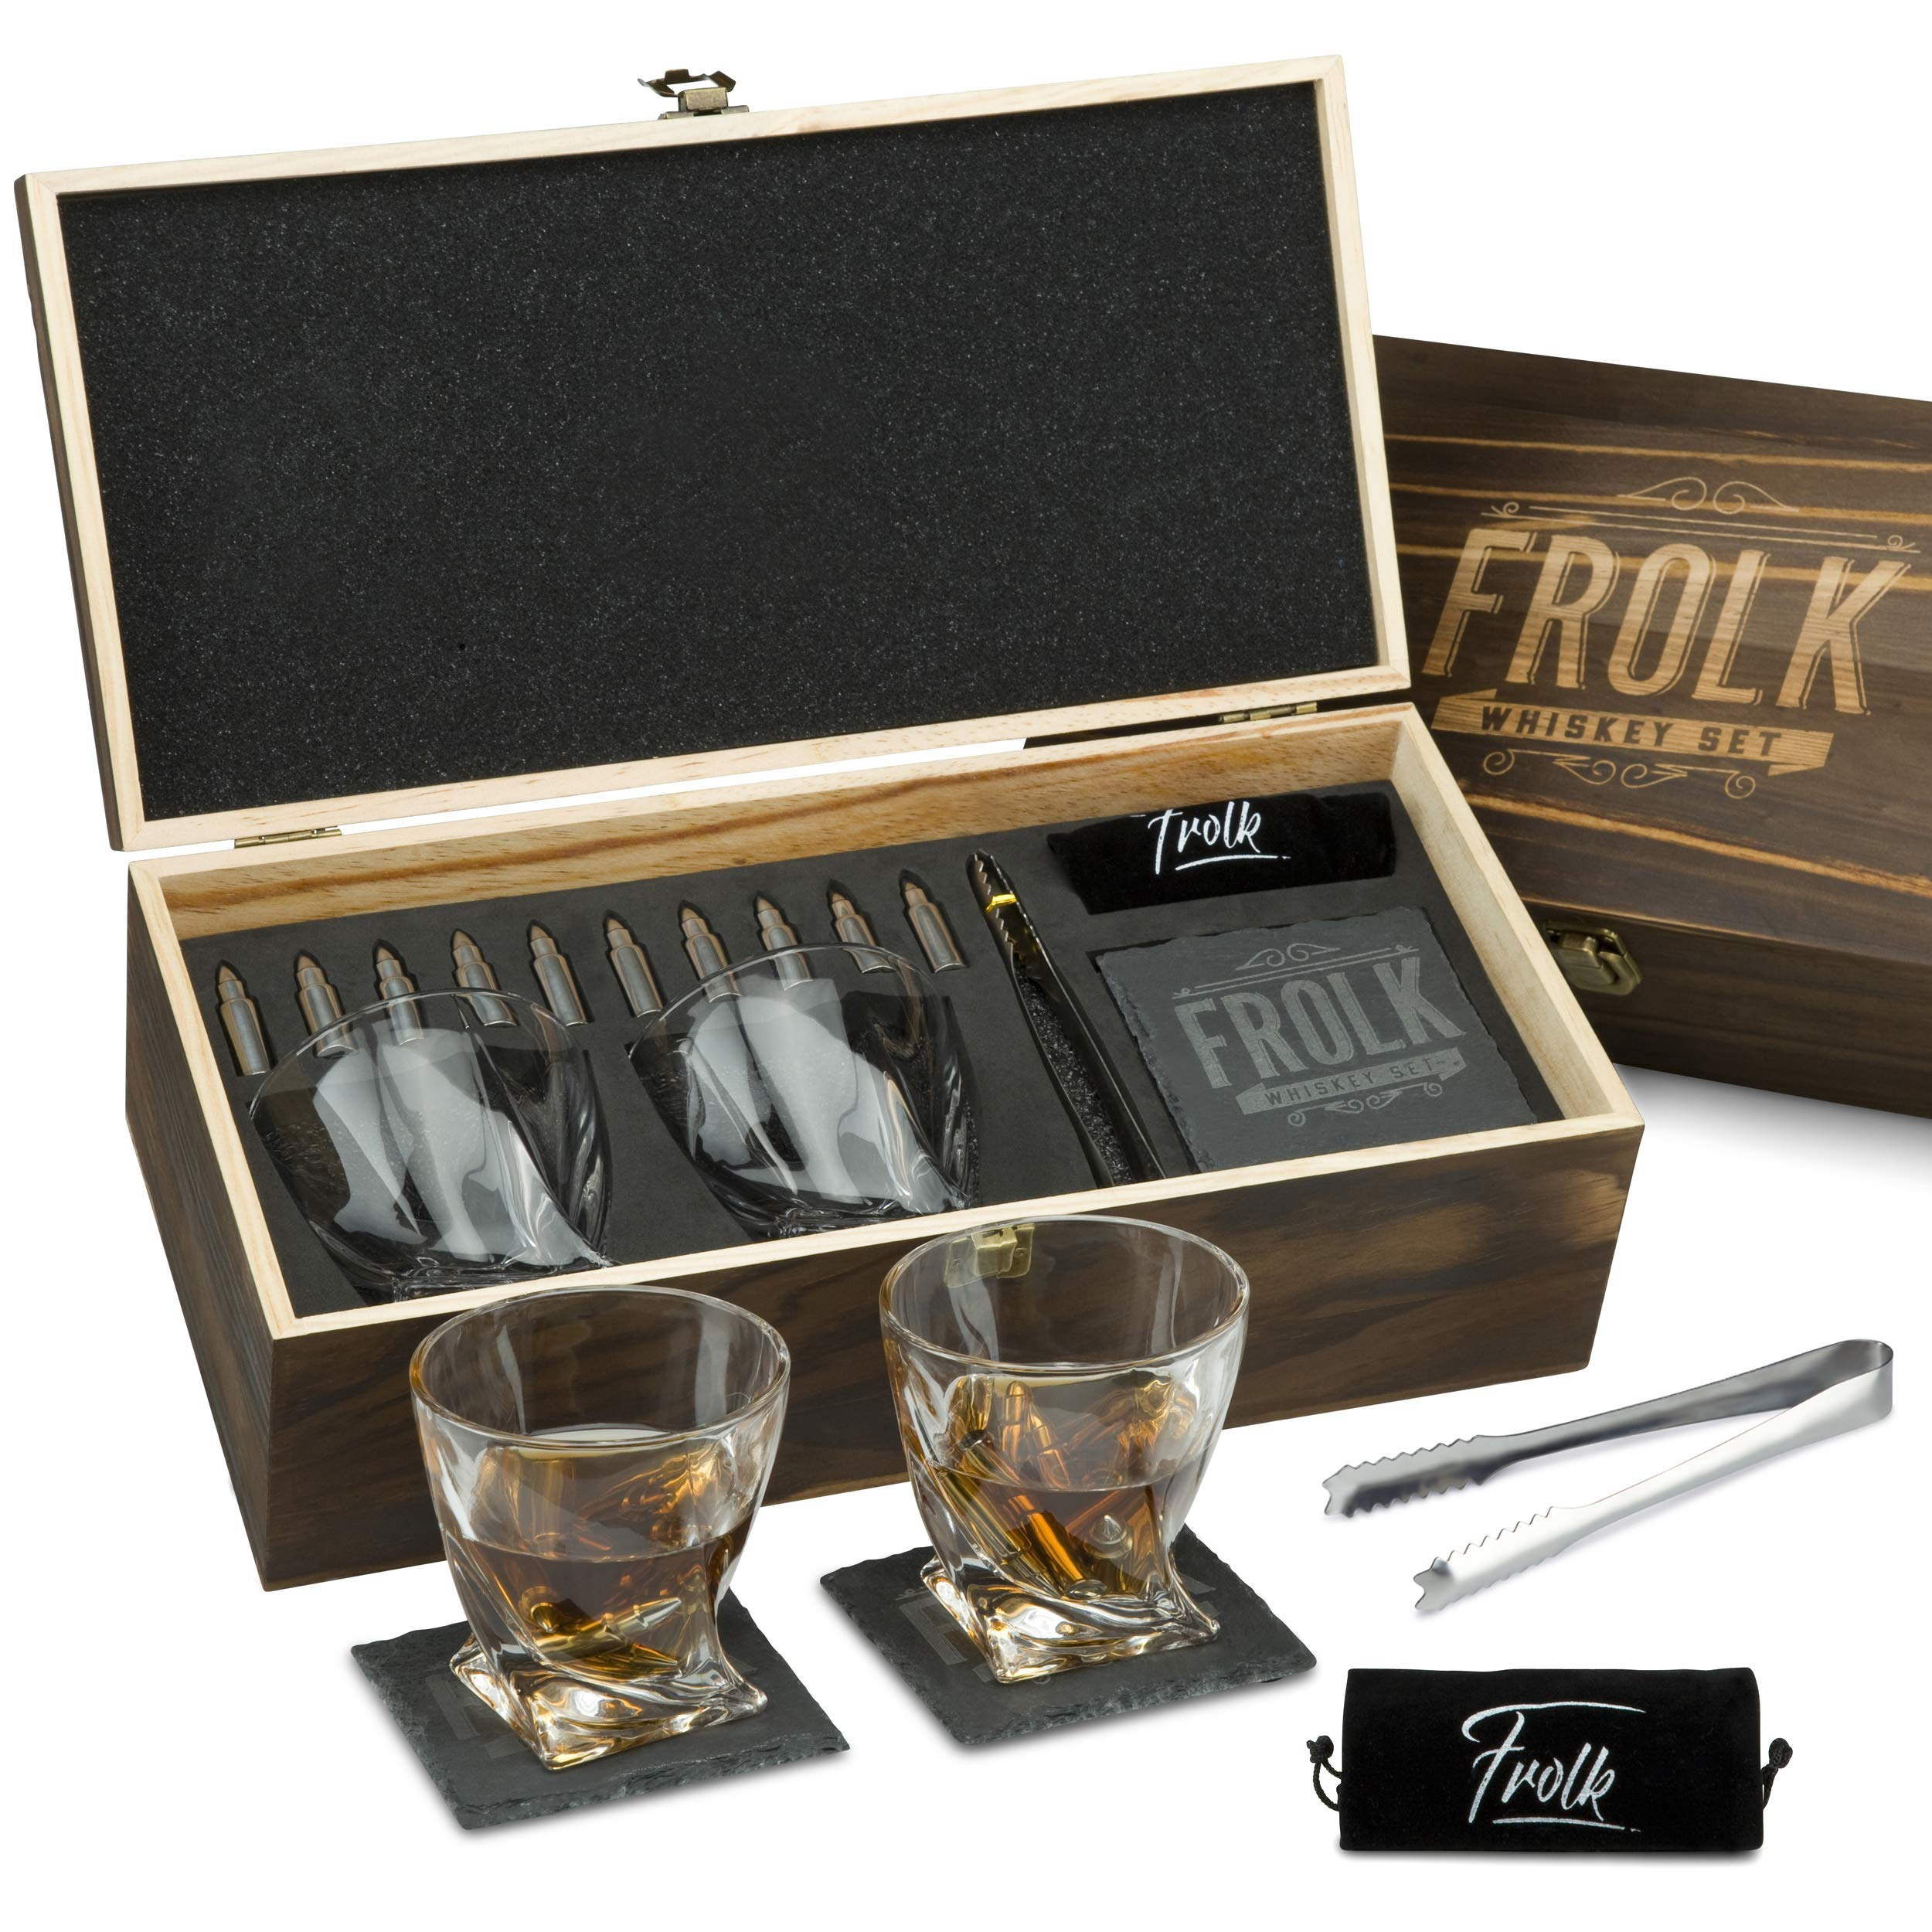 Premium Bullet Sharped Whiskey Stones Gift Set for Men - 10 Bullets Chilling Stainless-Steel Whiskey Rocks - 11 oz 2 Large Twisted Whiskey Glasses, Slate Coasters, Tongs - Luxury Set in Pine Wood Box by Frolk